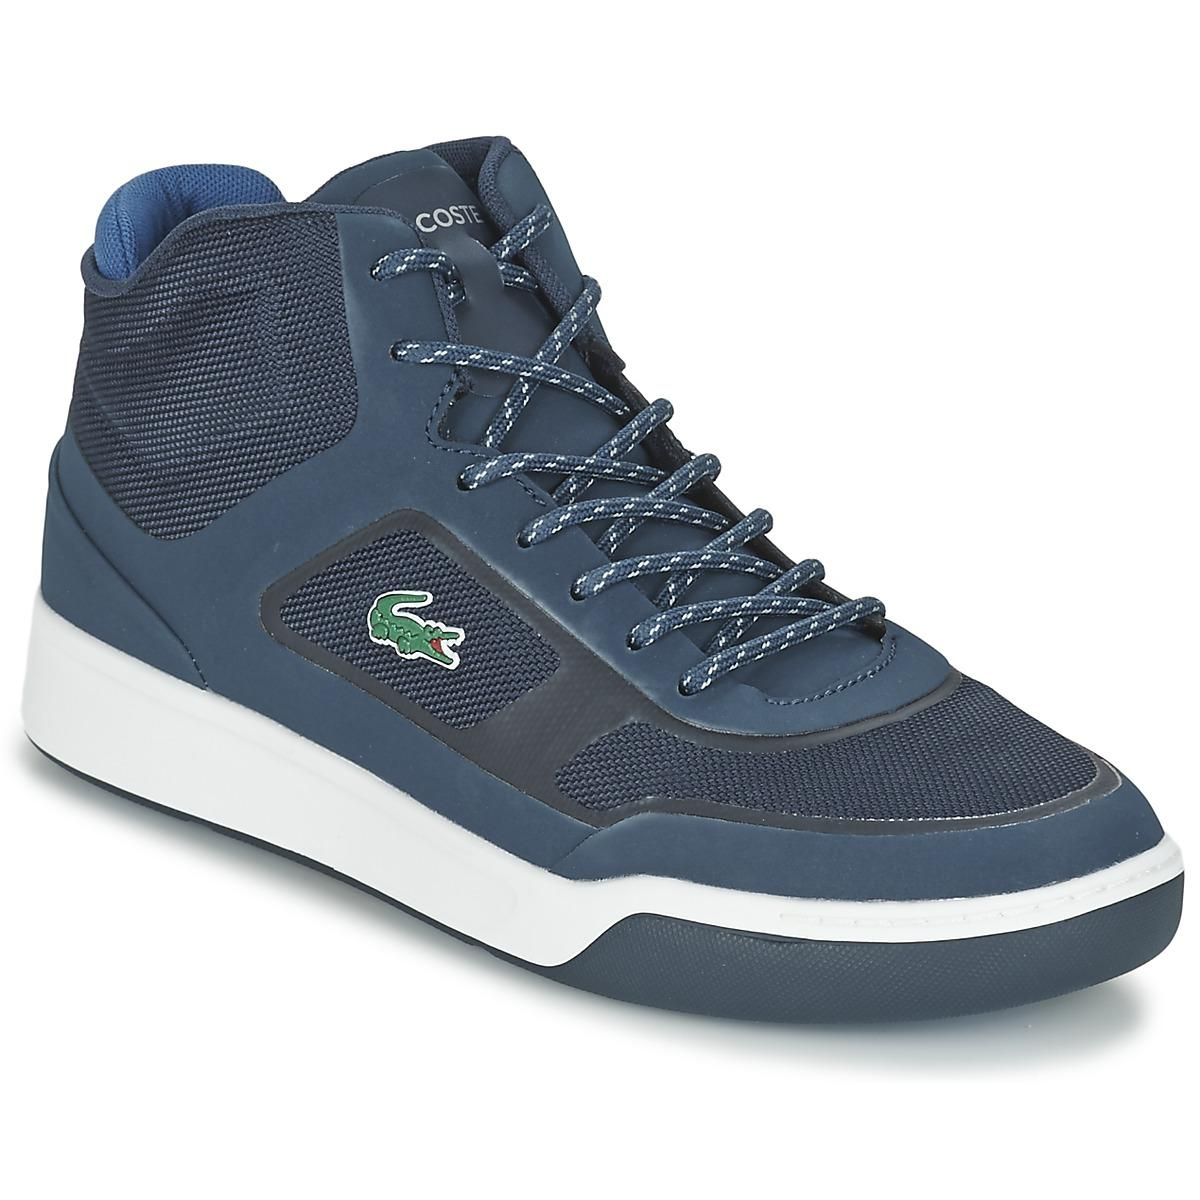 bf0c81514fbe Lacoste Explorateur Spt Mid 117 2 Shoes (high-top Trainers) in Blue ...